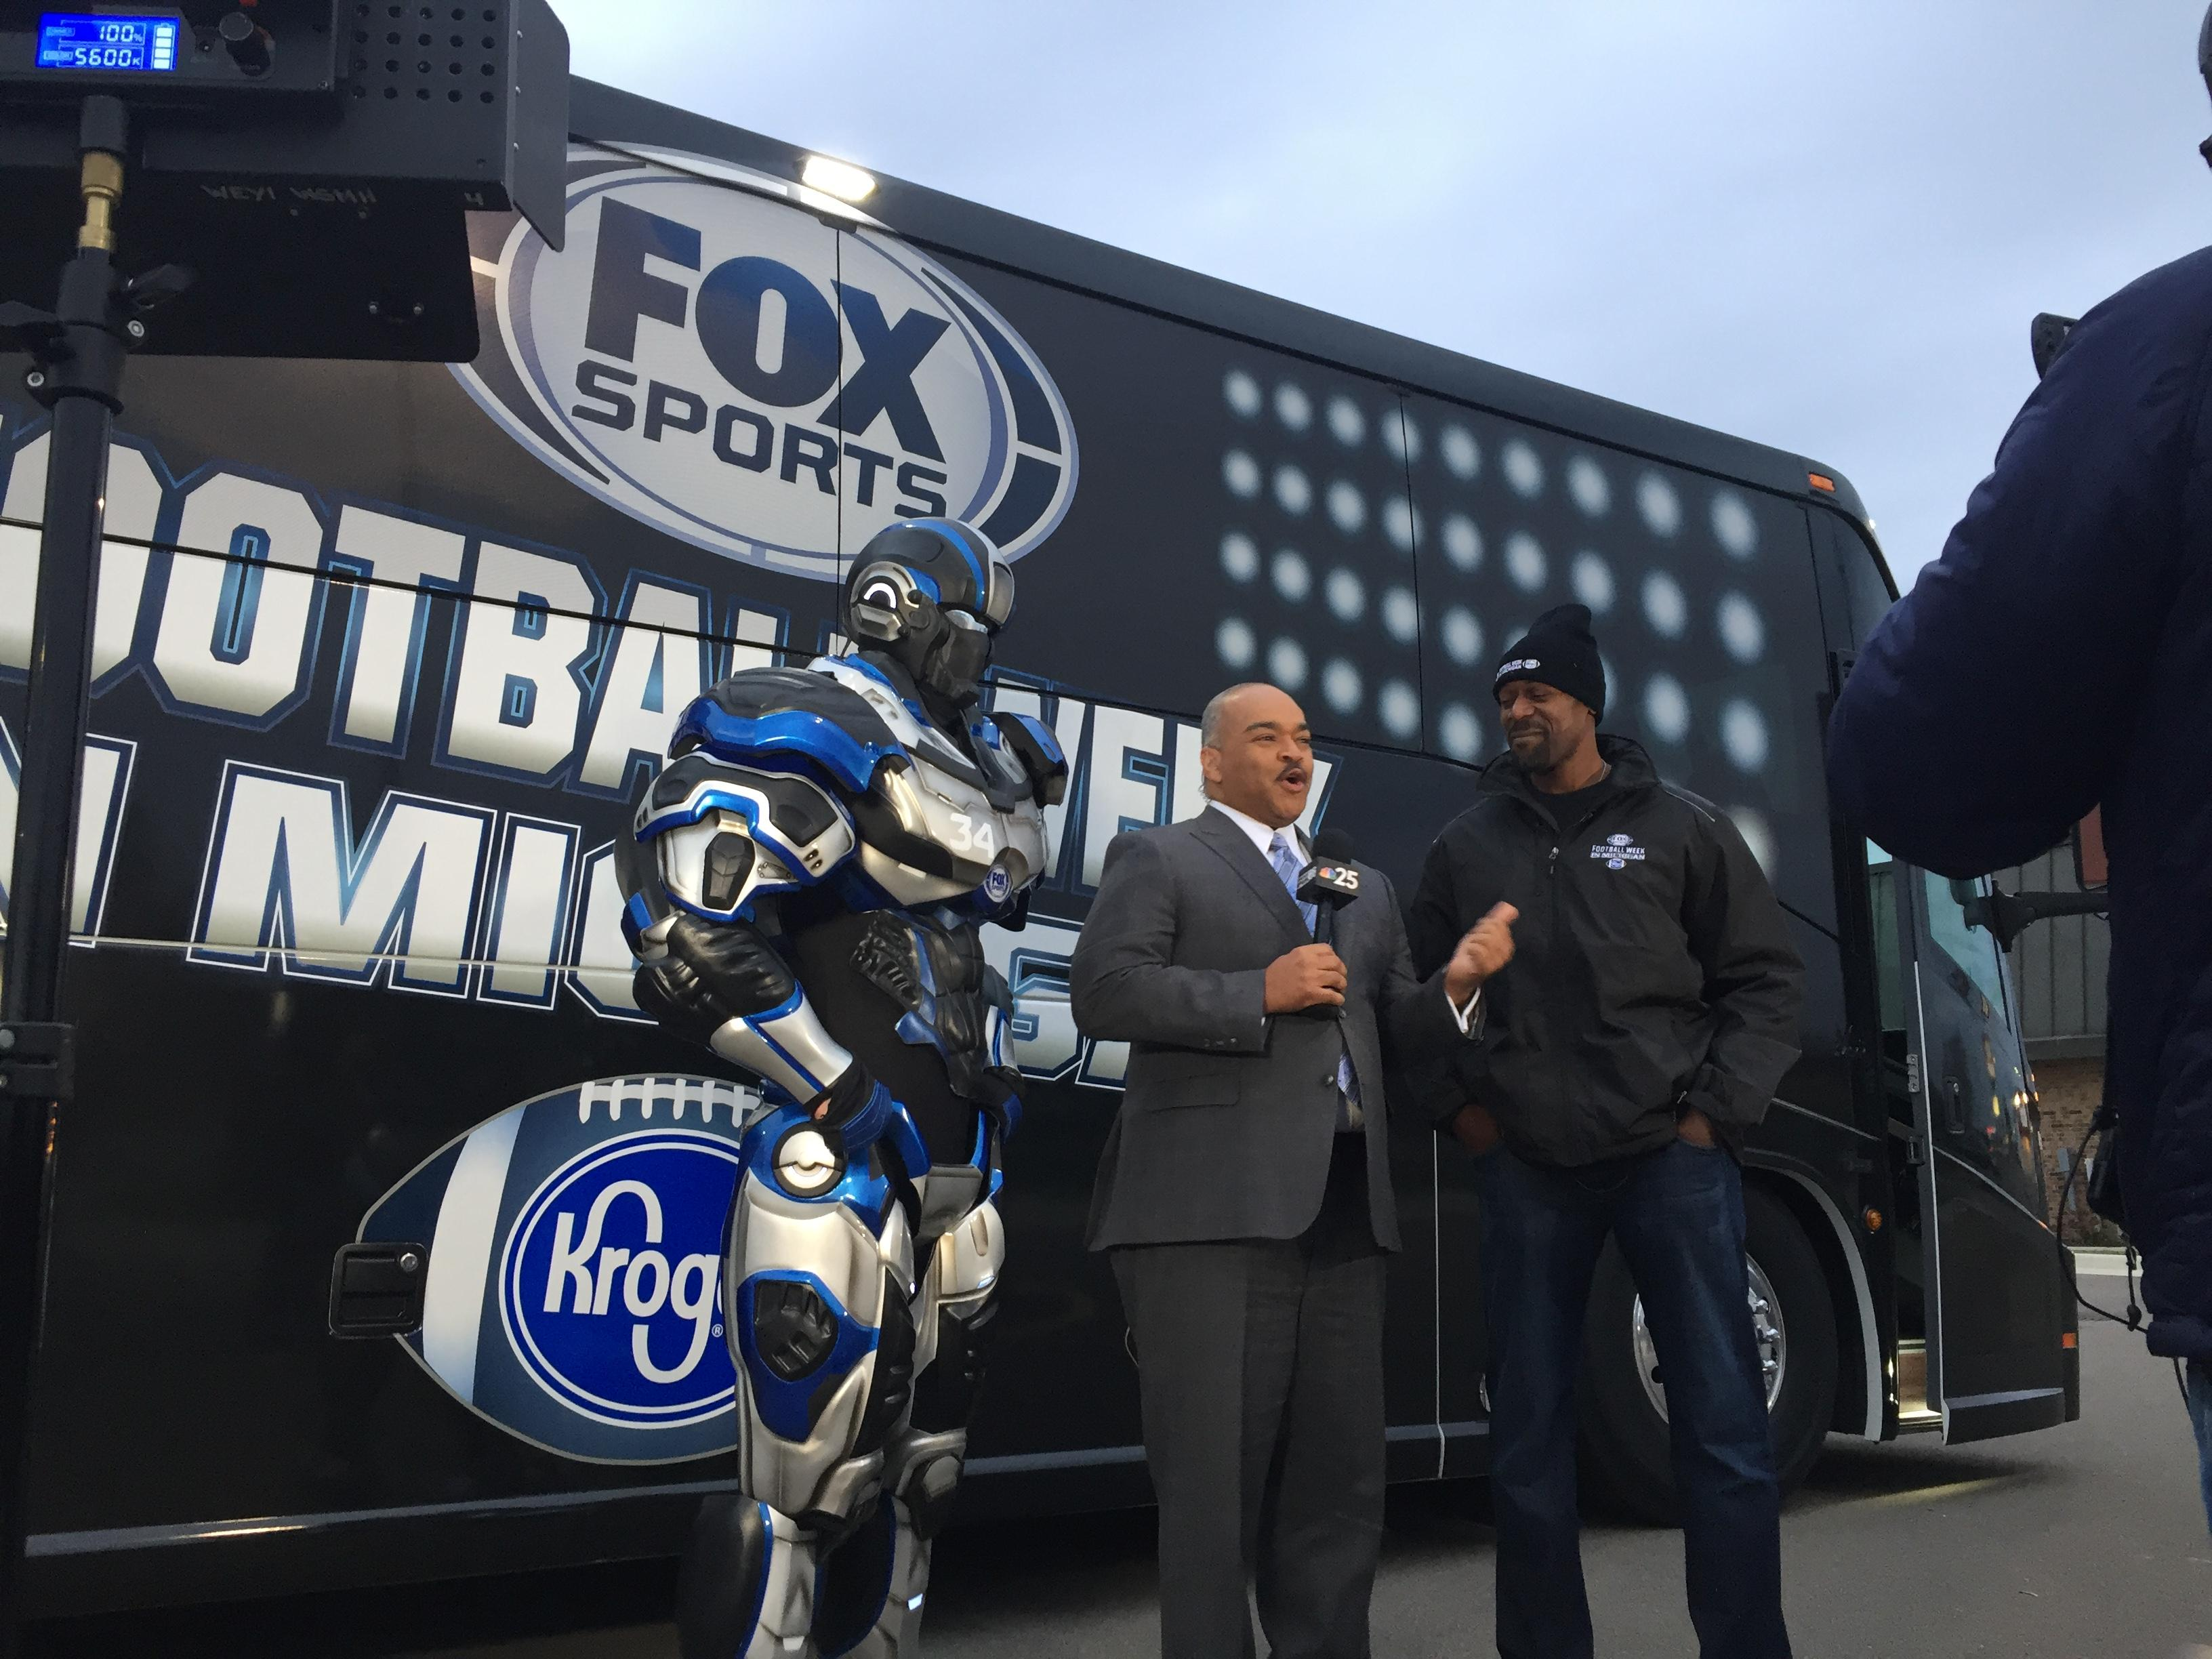 FOX Sports Detroit stopped FOX66 studio Wednesday, Nov. 15 promoting their tour across Michigan. They brought along Herman Moore, former Lions player, and their robot Cleatus. (Photos by WSMH)